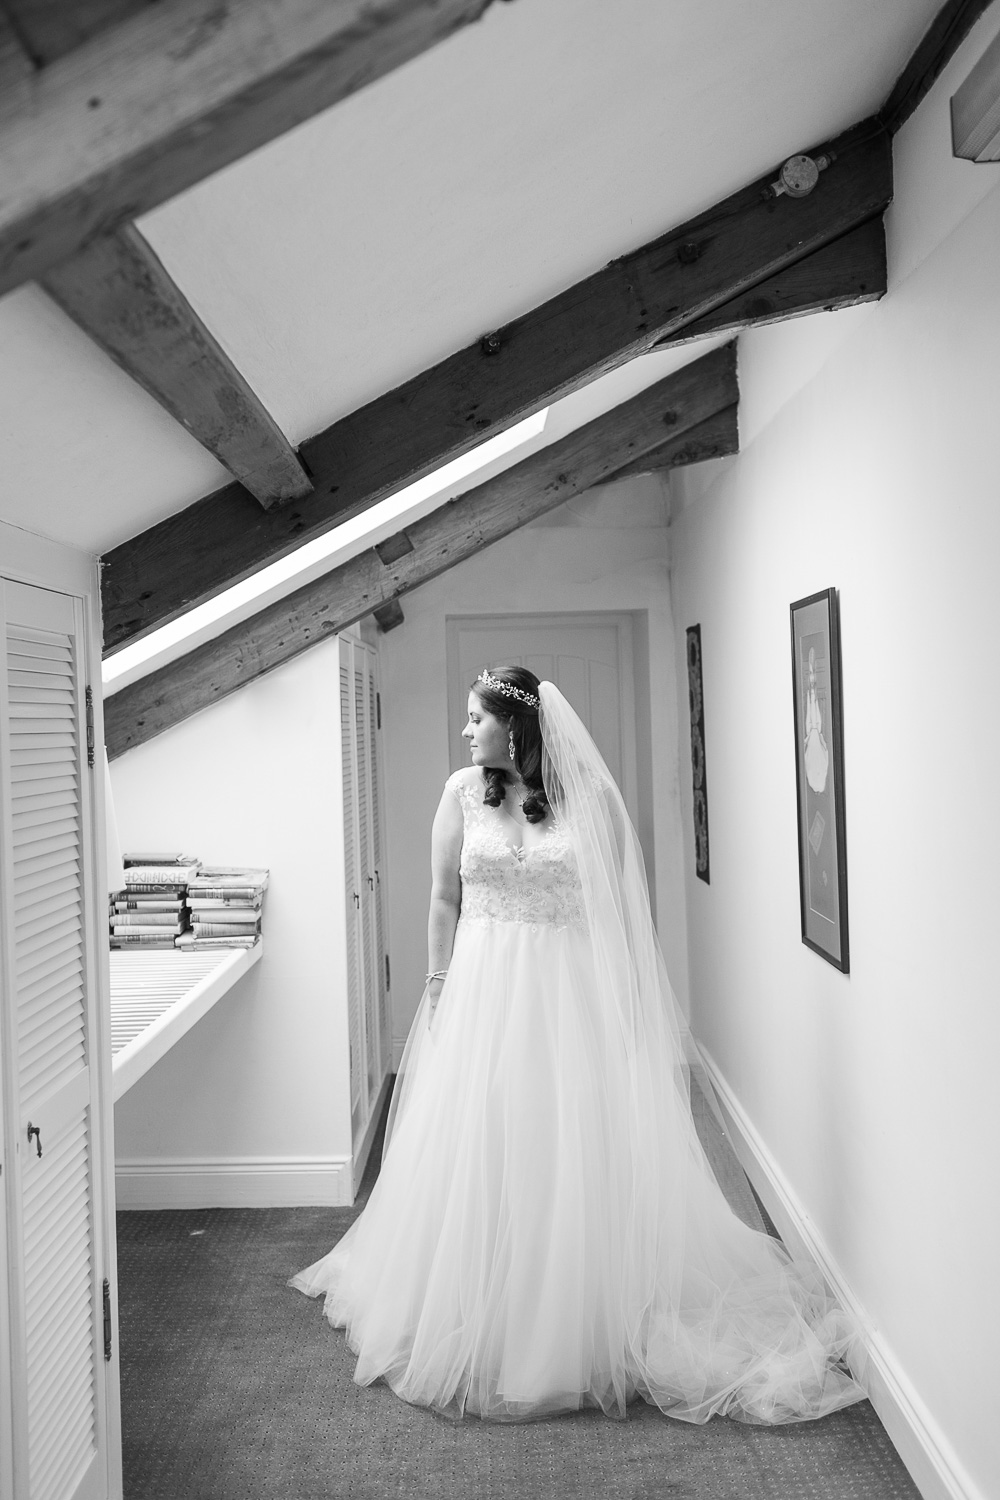 Tull skirt wedding dress with a long veil and a headpiece on a bride lit by a sunroof with wooden beams